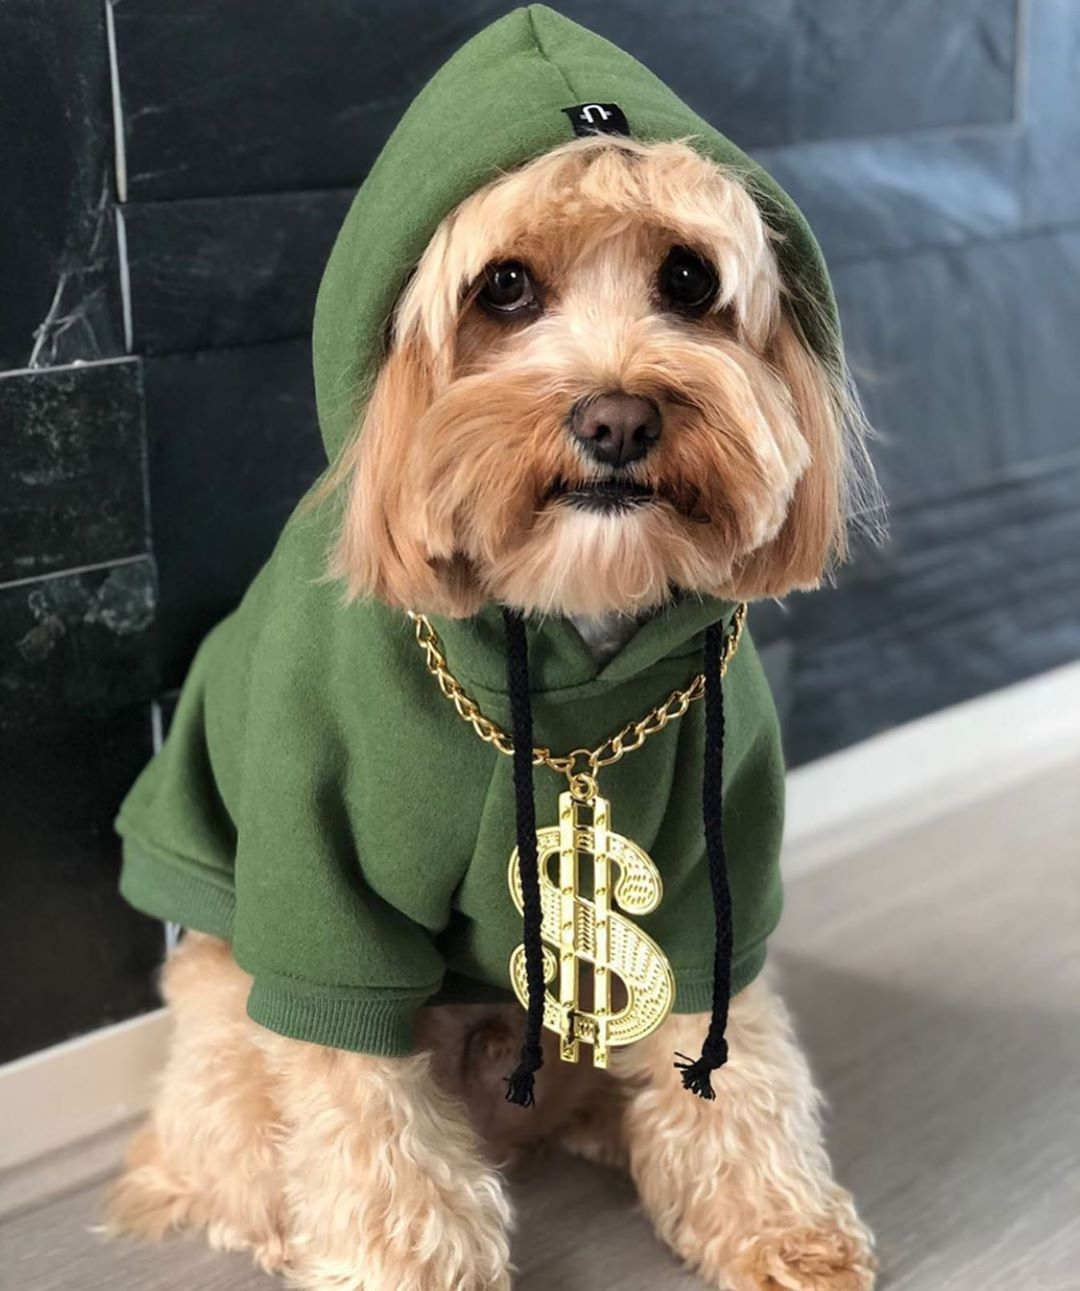 Get Rich Or Die Tryin Humphrey D Dog Bling Prettyflyforawhiteguy Who Can Name Rapper Cavoodle Oodle P Dog Hoodie Best Dogs Funny Dogs